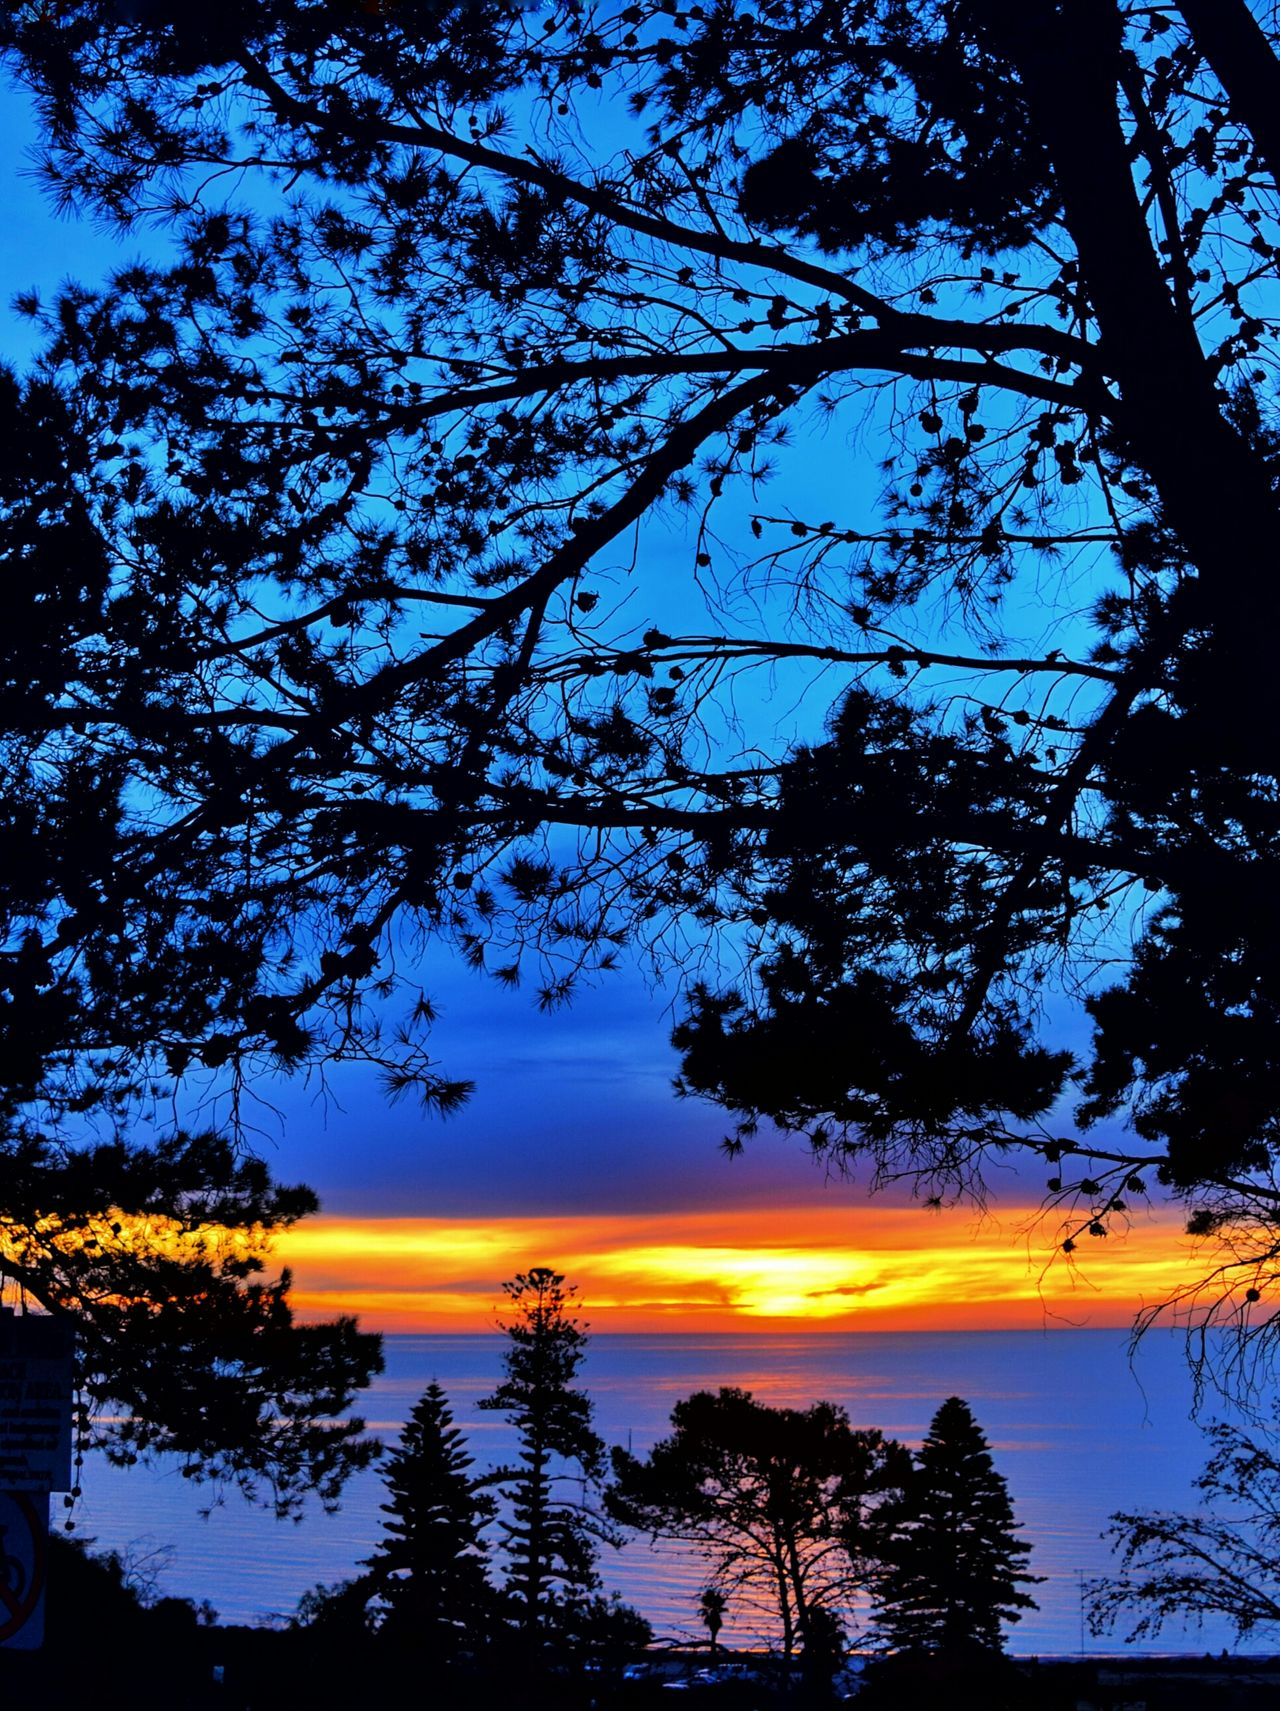 Seacliff South Australia Taking Photos Check This Out Hanging Out Relaxing Hi! Enjoying Life Sunset✨trees✨ Nature Photography Sunsetporn Nature_collection Silouette & Sky Silhouettes Collection Sunset And Clouds  Sunset_collection Clouds And Sky Photos Of Arround You The Great Outdoors - 2015 Eyeem Awards Sunset_collection Sunset Silhouettes. Sunset #sun #clouds #skylovers #sky #nature #beautifulinnature #naturalbeauty Photography Landscape [ Sunset_collection Sunset_captures Sunset #sun #clouds #skylovers #sky #nature #beautifulinnature #naturalbeauty #photography #landscape Sunset #sun #clouds #skylovers #skyporn #sky #beautiful #sunset #clouds And Sky #beach #sun _collection #sunst And Clouds Nature_perfection Nature On Your Doorstep Eye4photography  EyeEm Nature Lover Silhouette_collection